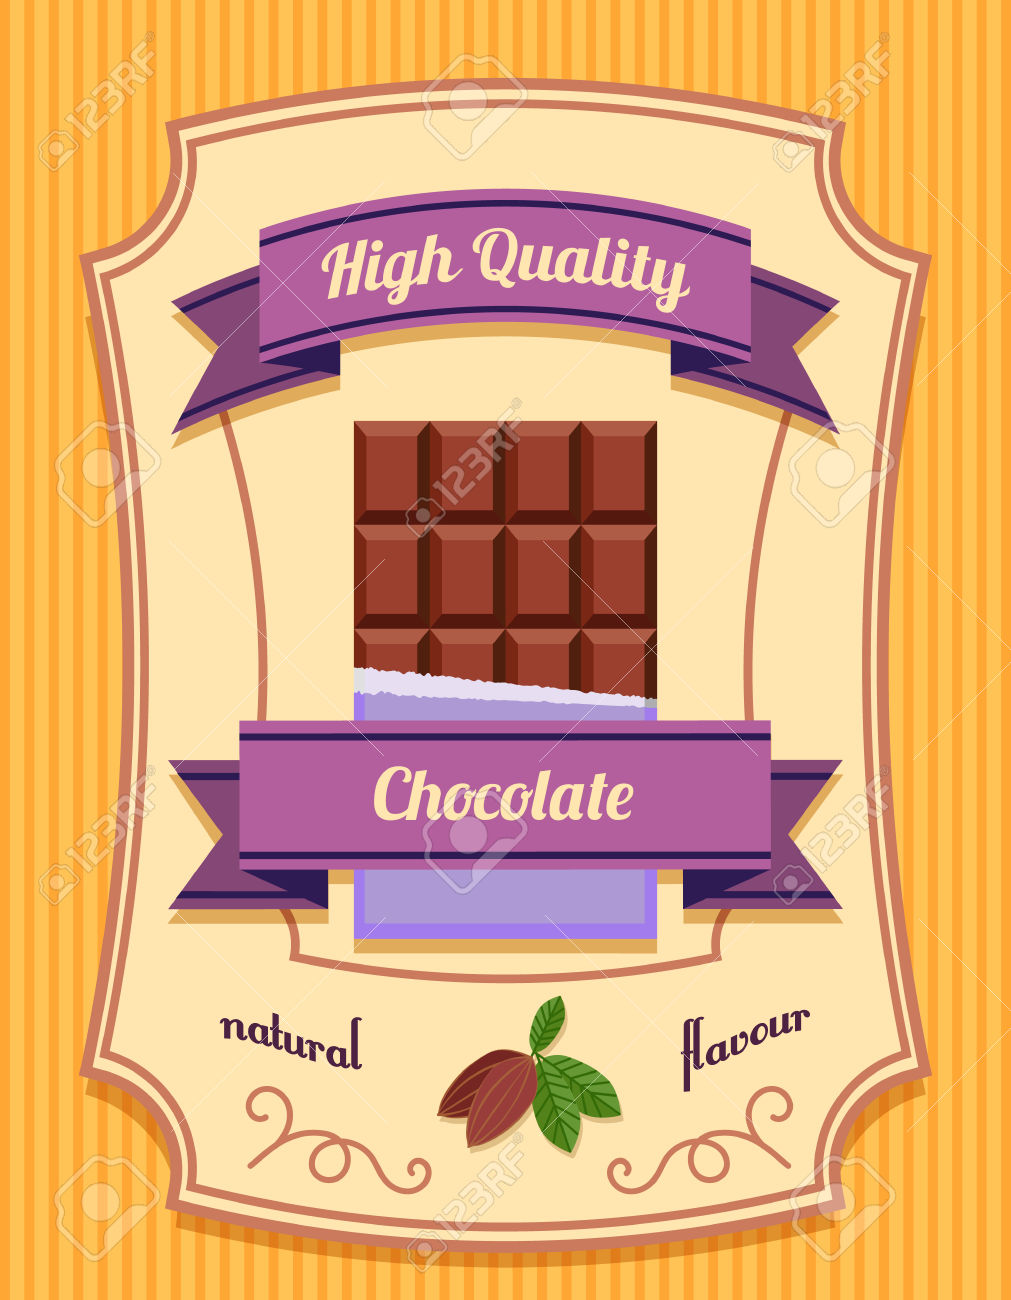 Chocolate Bar Pack High Quality Natural Flavor Flat Poster Vector.